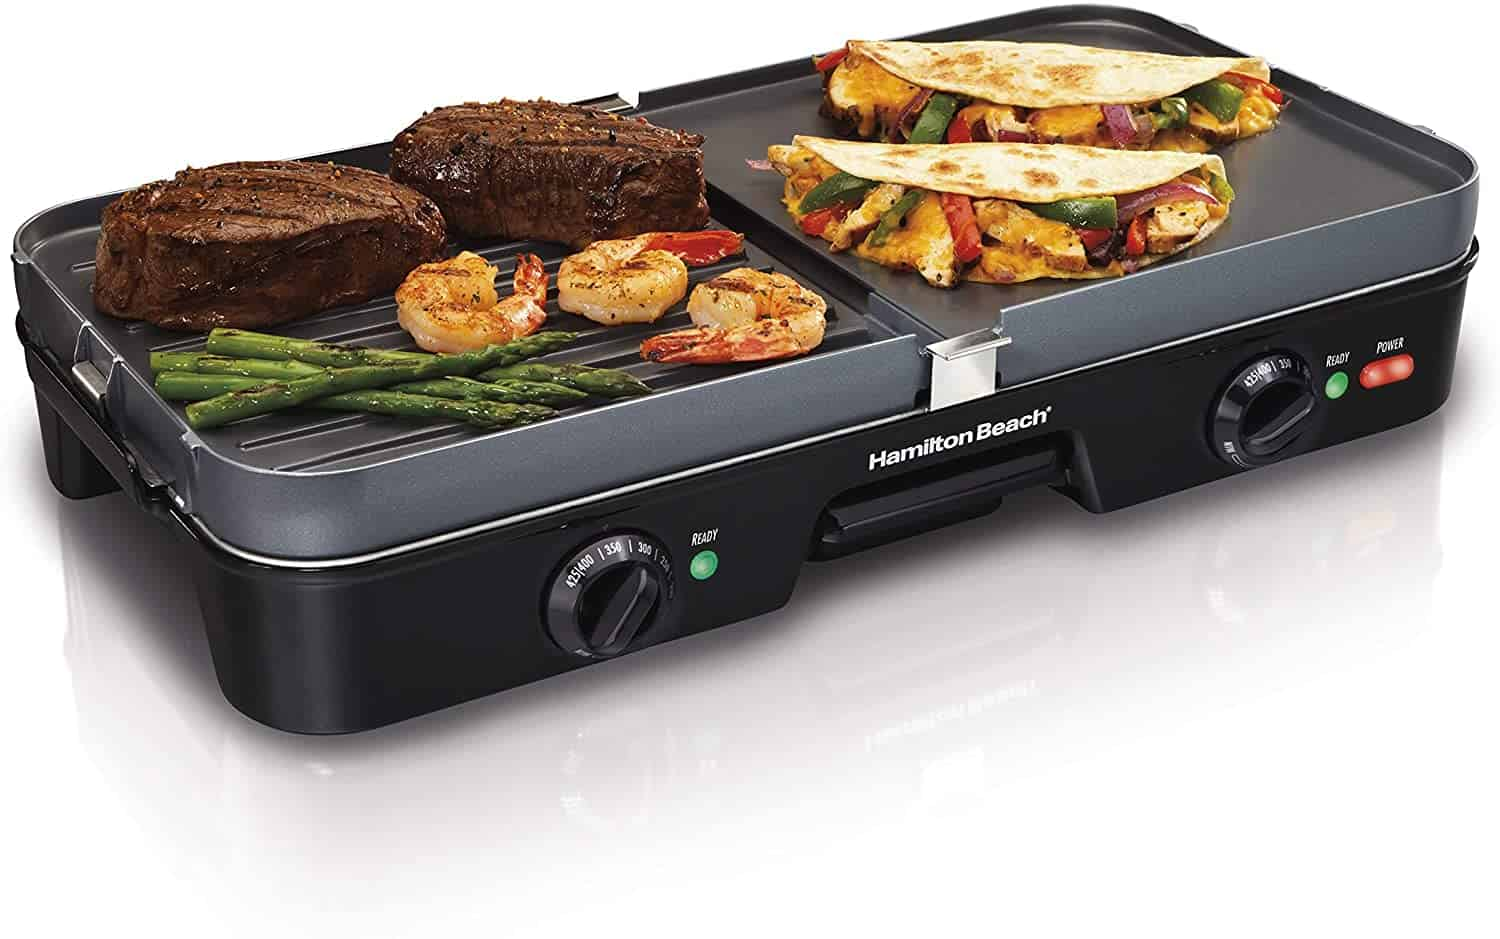 Best indoor electric grill/griddle combo: Hamilton Beach 3-in-1 Grill and Griddle